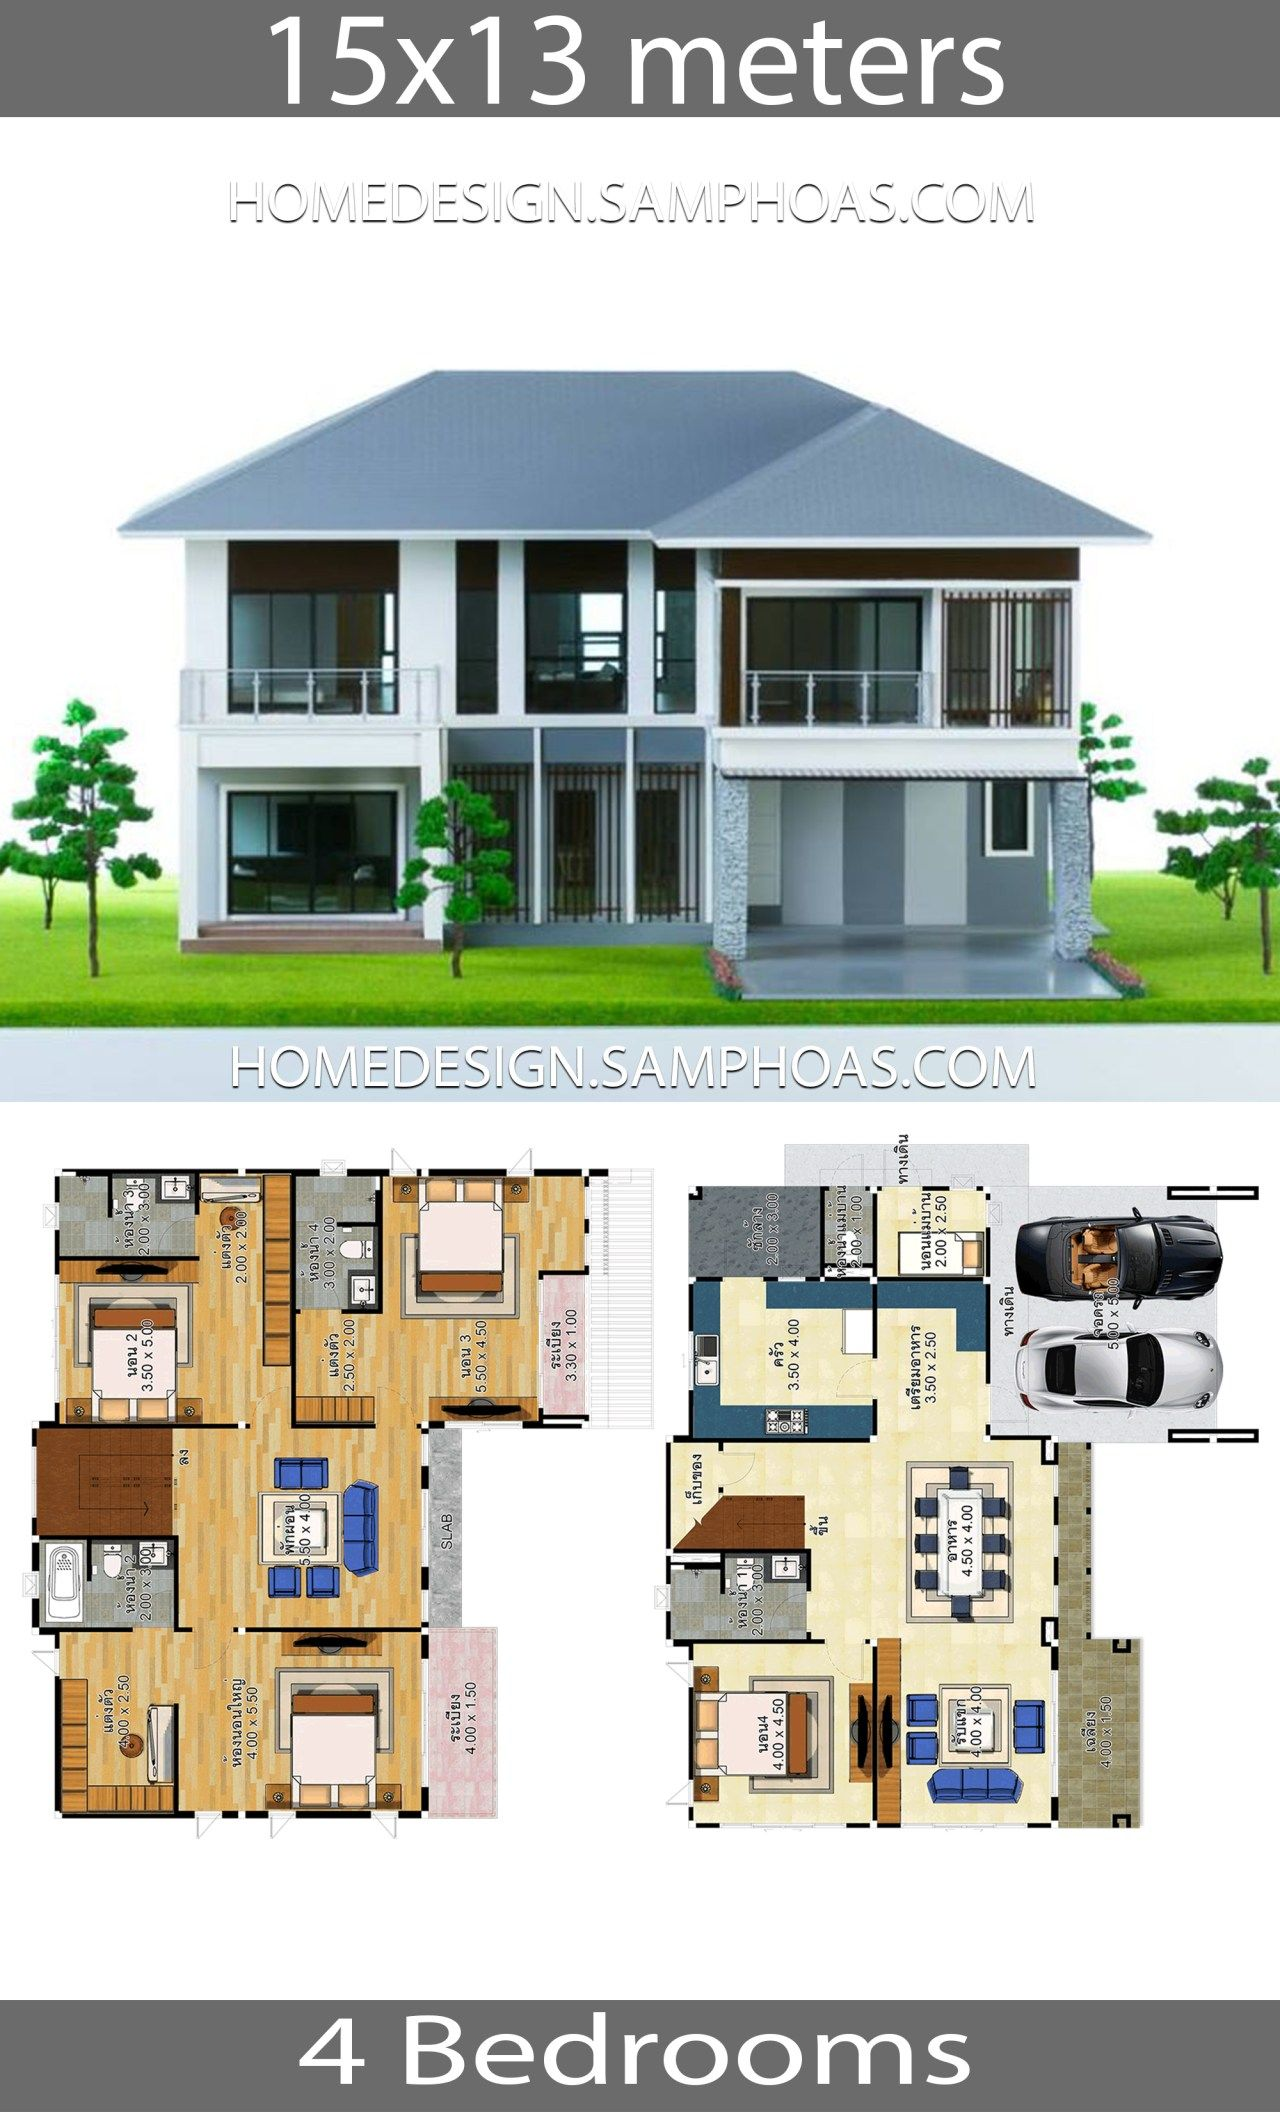 House Plans Idea 15x13 With 4 Bedrooms Home Ideas House Plans House Layout Plans Modern House Plans